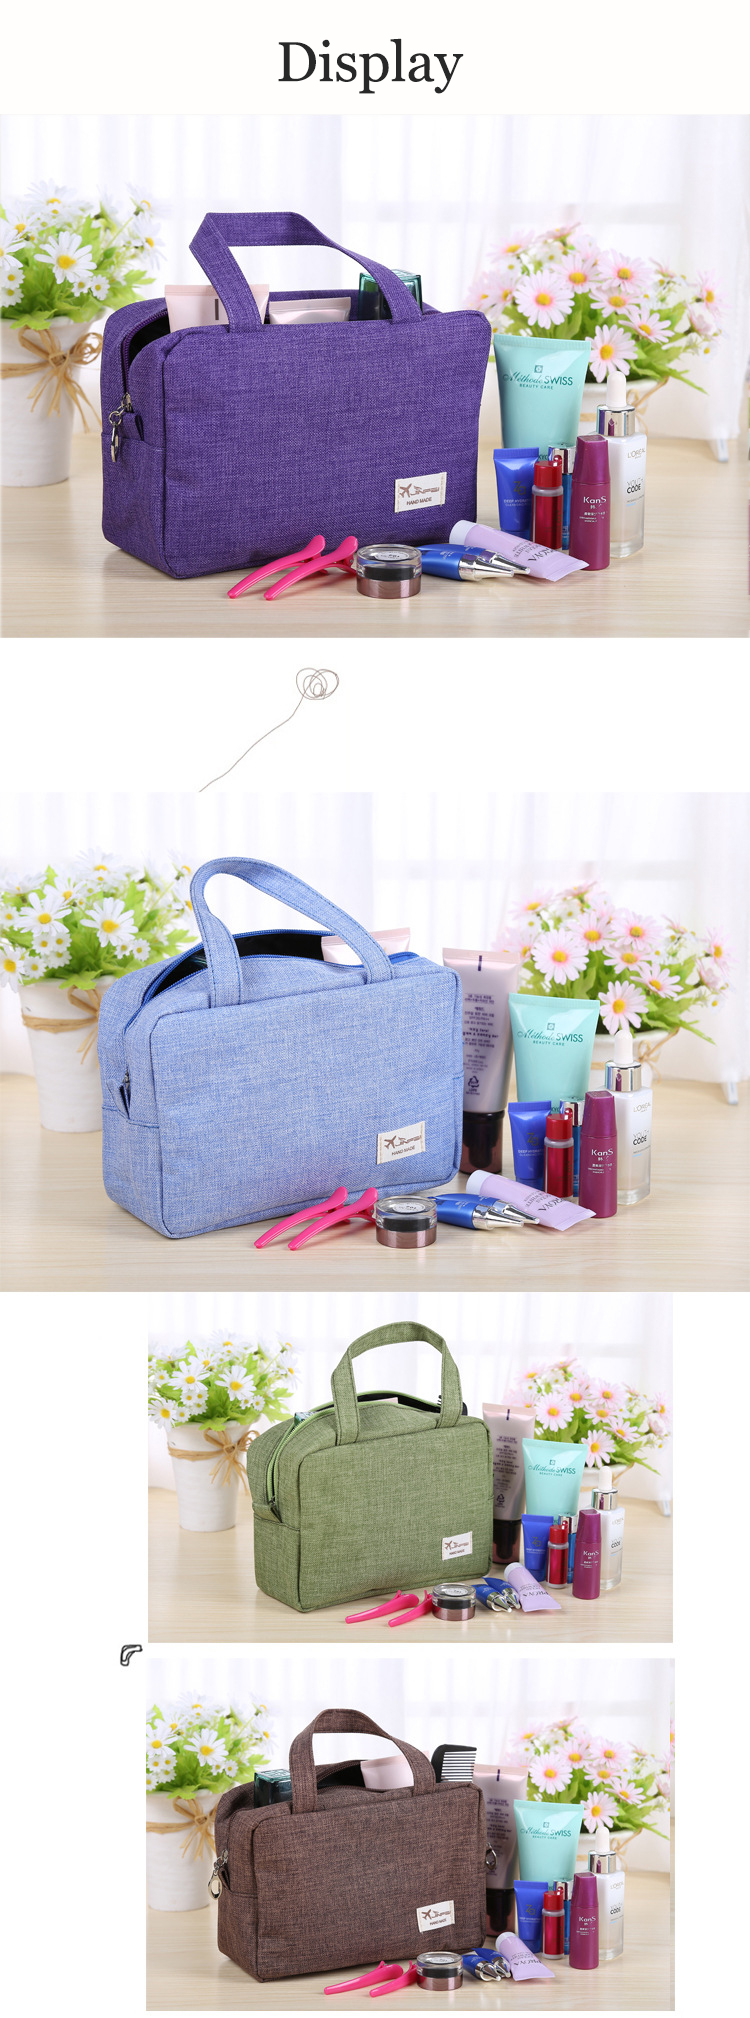 52ea2f9ba6ef Honana HN-TB13 Travel Toiletry Organizer Large Cosmetic Shaving Kit Storage  Bags